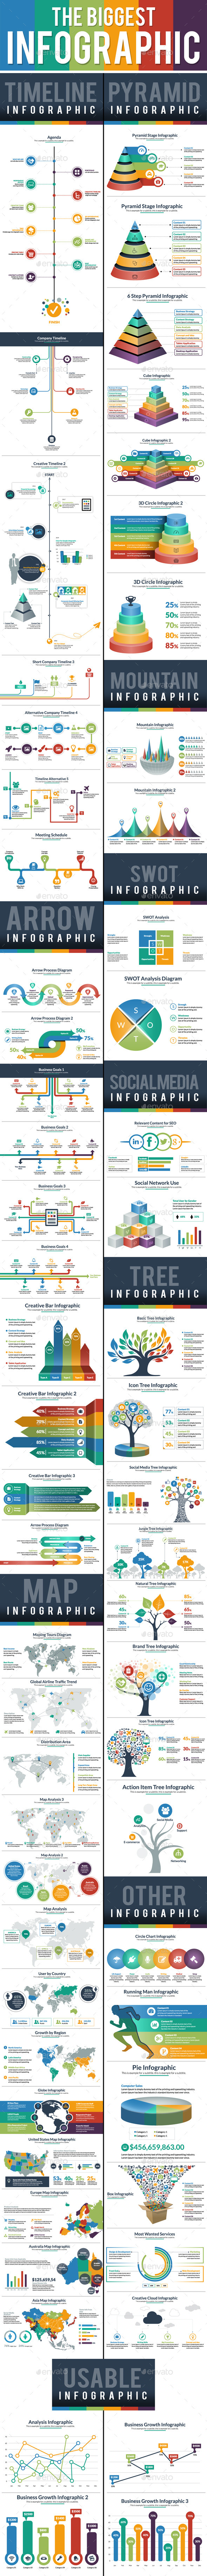 The Biggest Infographic Pack